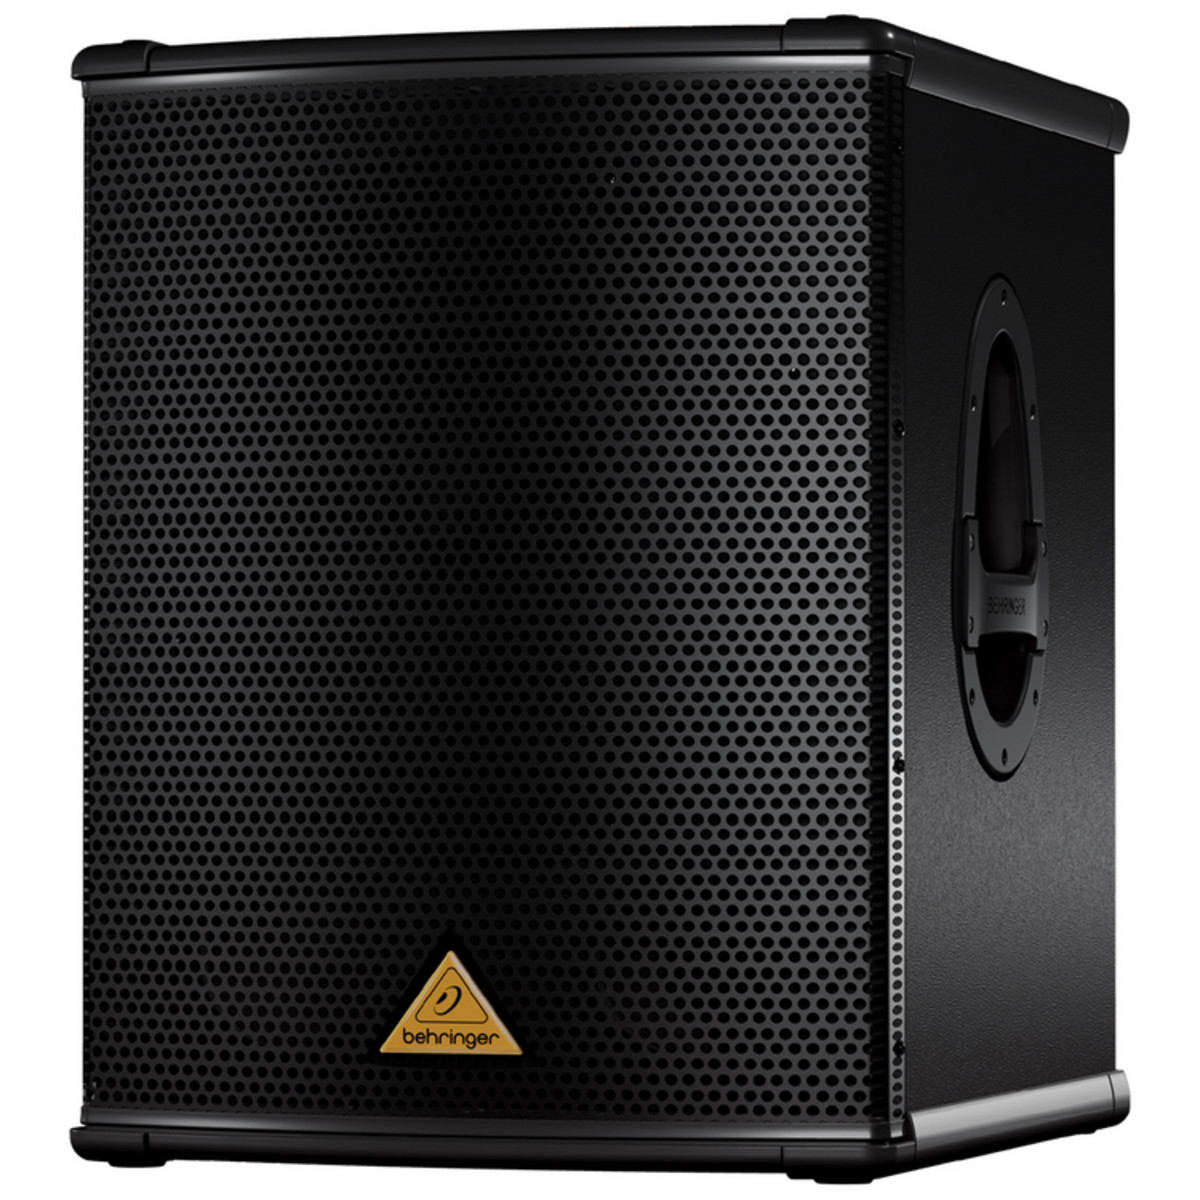 disc behringer b1500d eurolive pro powered subwoofer at. Black Bedroom Furniture Sets. Home Design Ideas